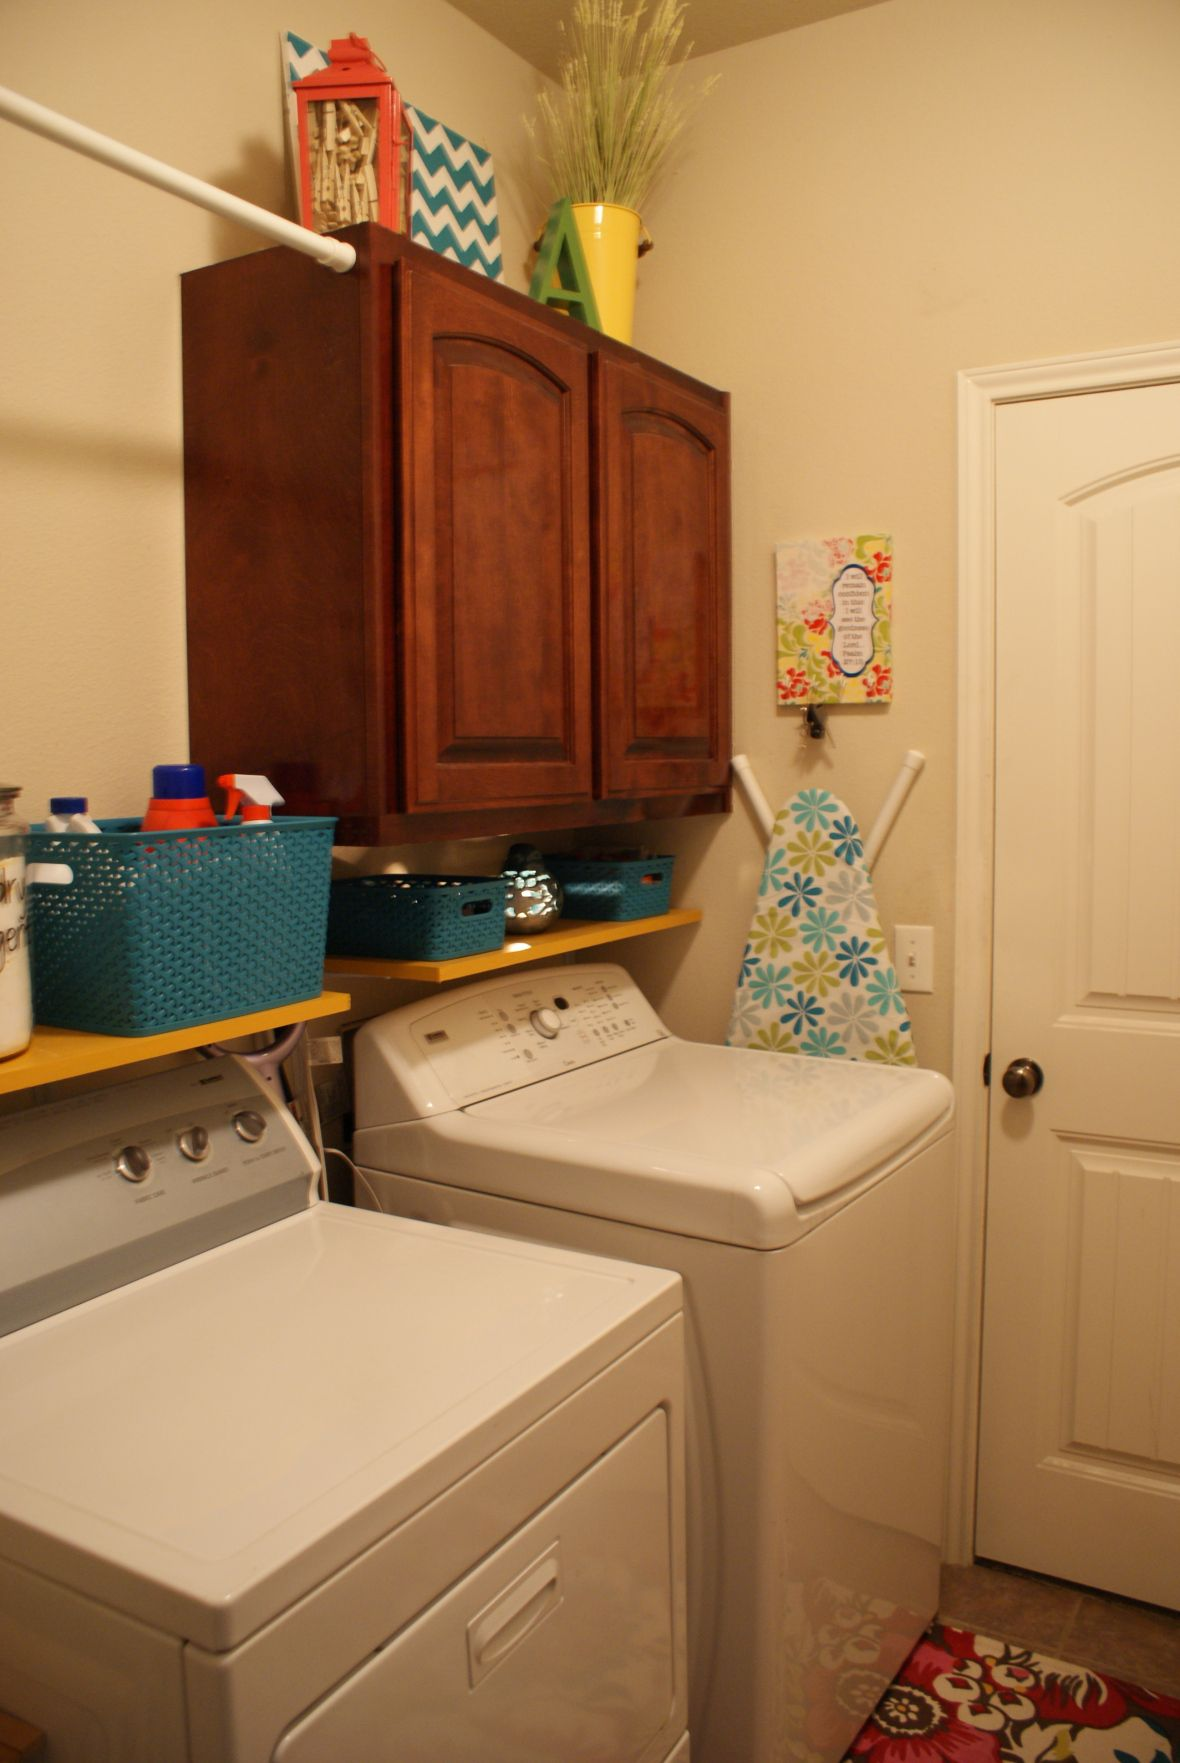 BEFORE My Laundry Room Was A Messy Unorganized Eye Sore For Entirely Too Long